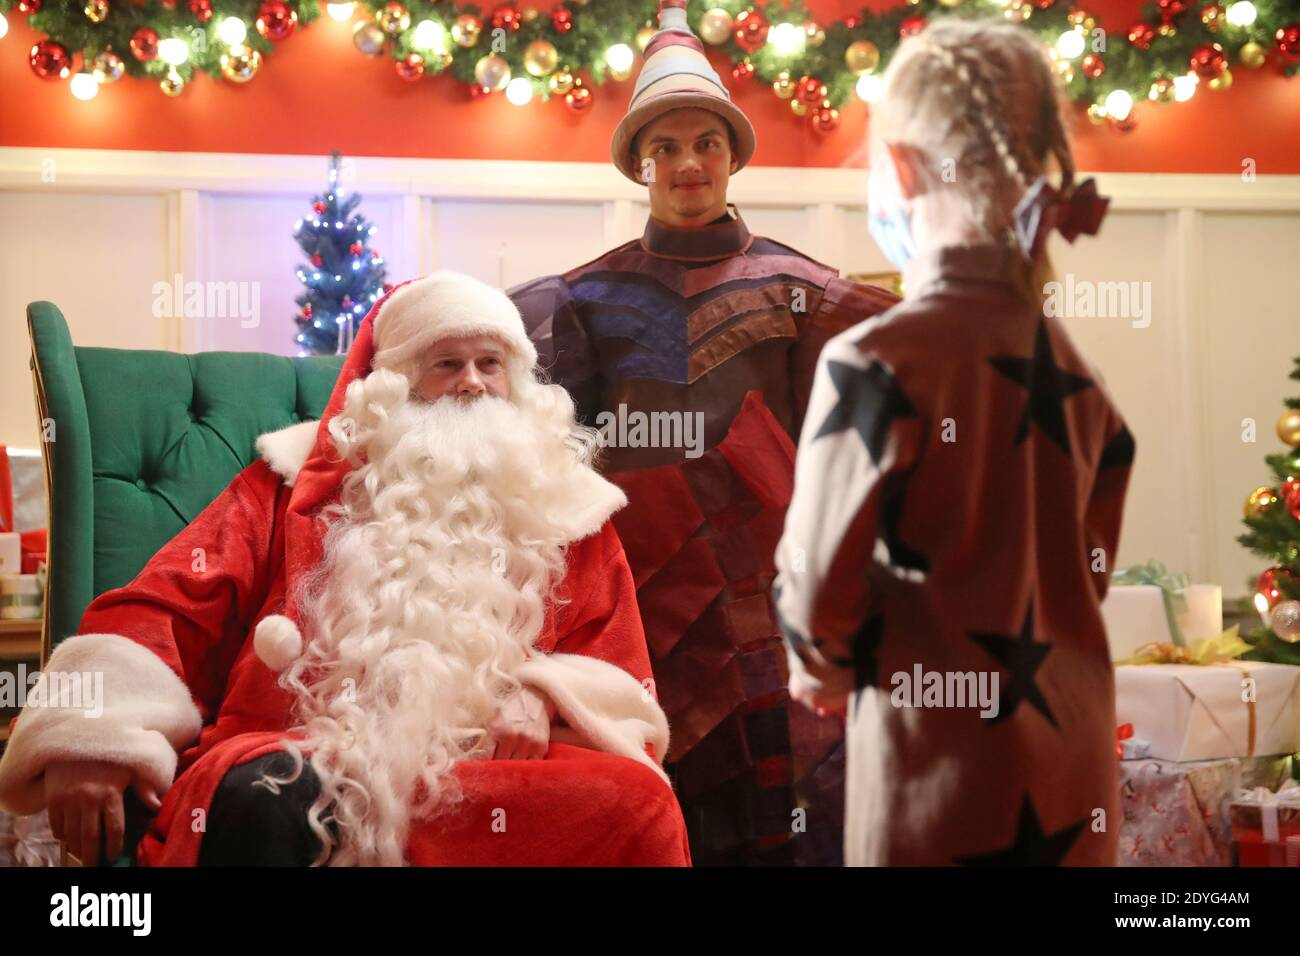 Father Christmas Trolley Square 2021 Father Christmas Assistant High Resolution Stock Photography And Images Alamy